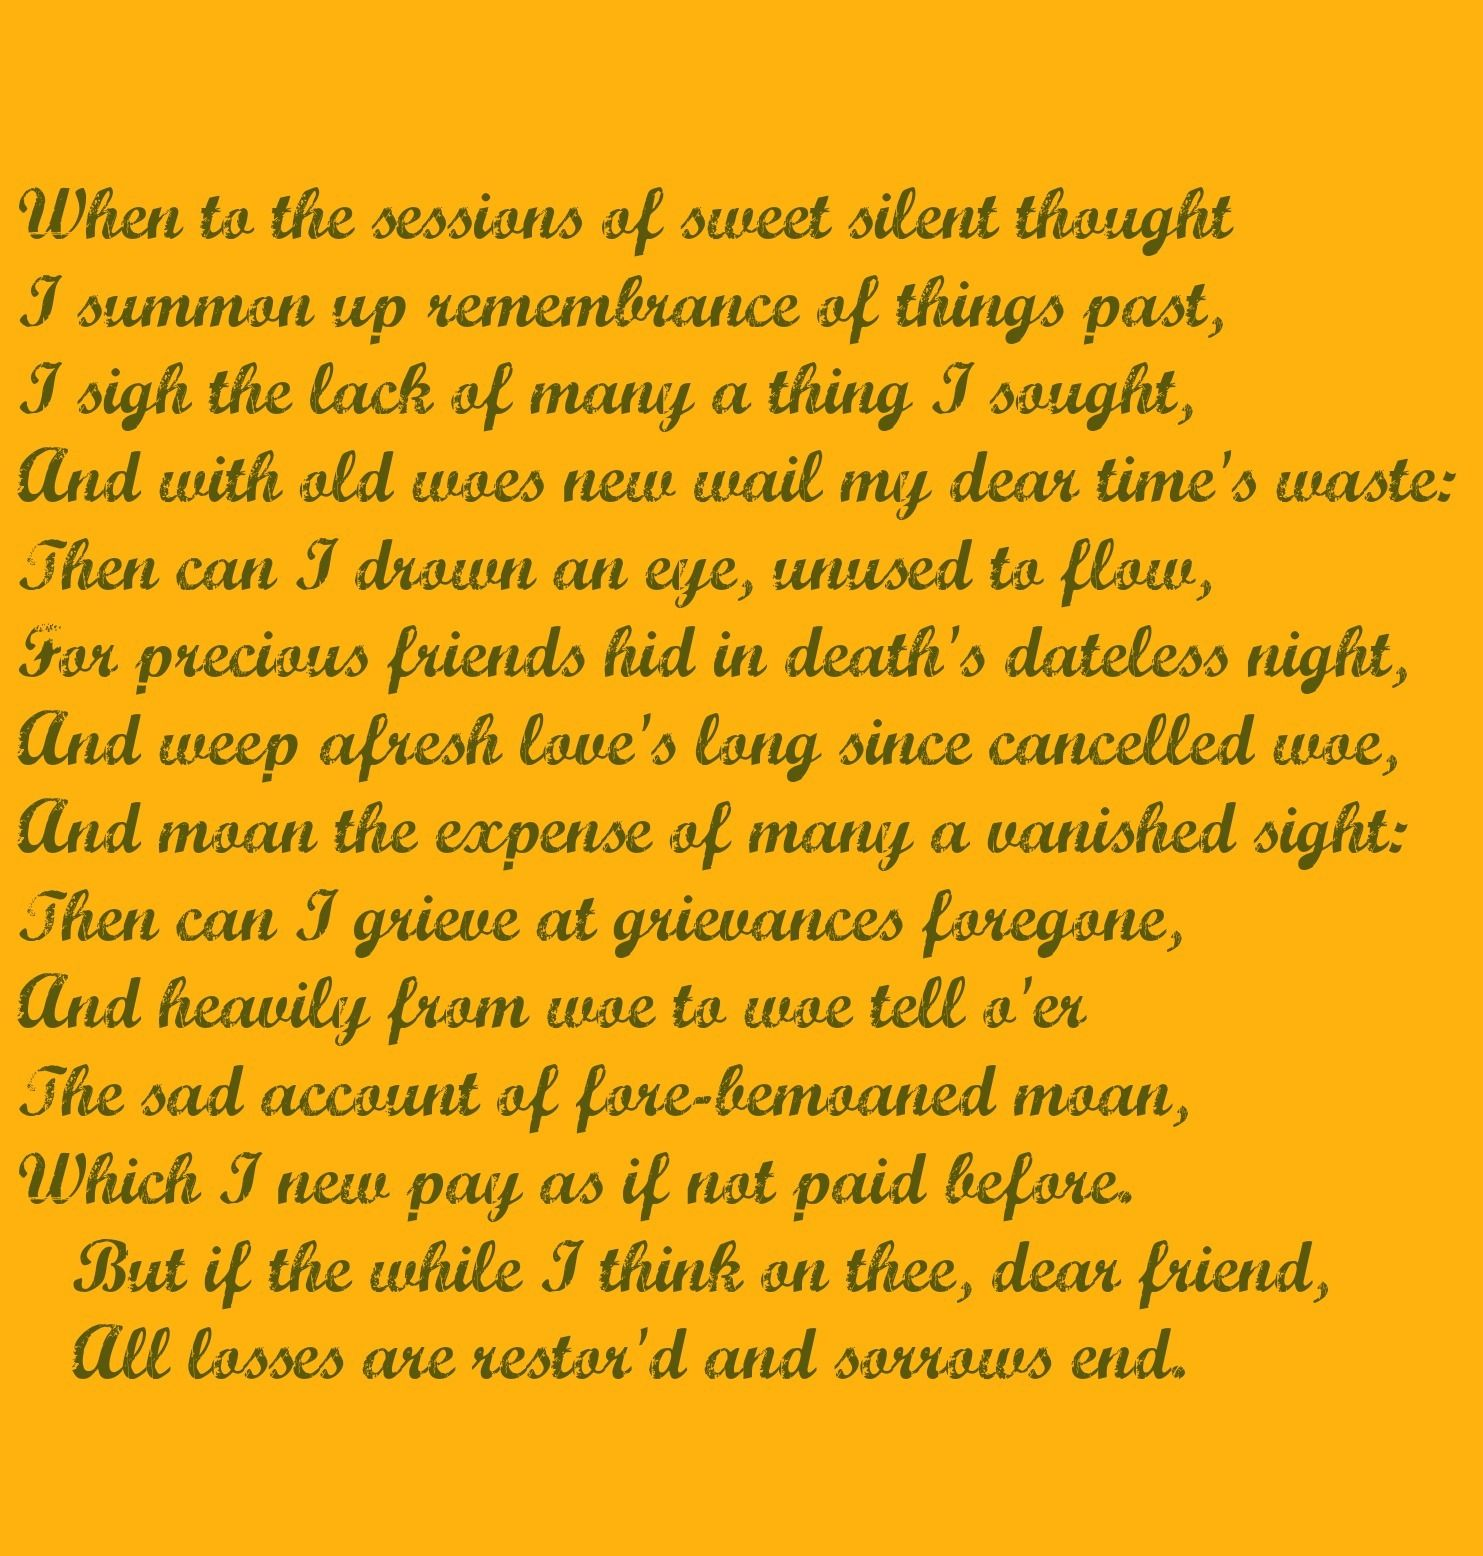 William Shakespeare Sonnet 30 Word Verse Thoughts Meaning Of 61